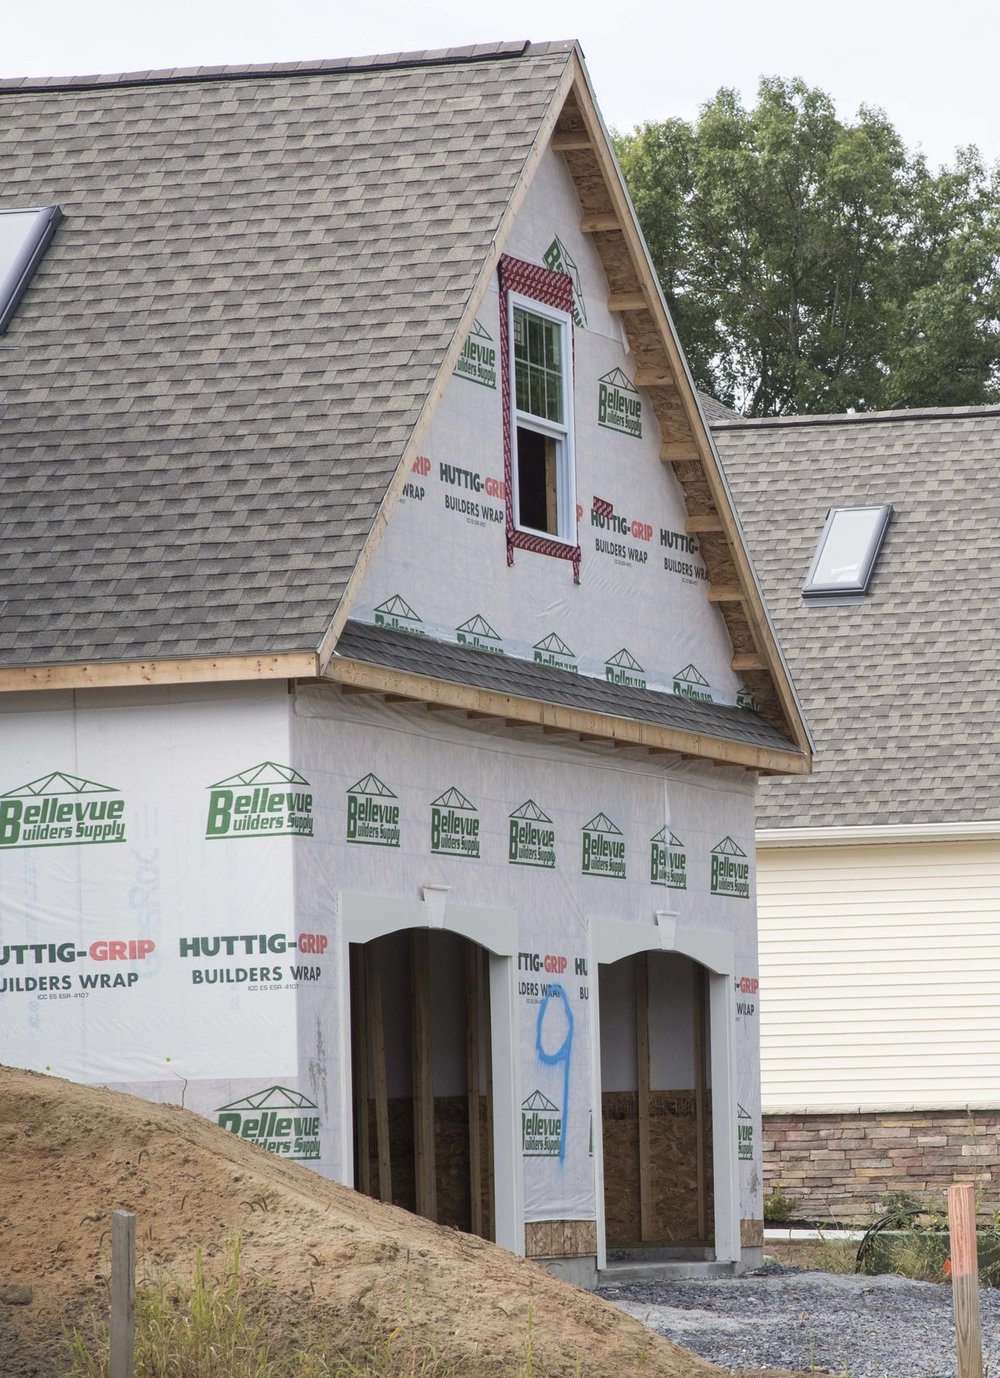 BDC Builders' Construction Features - • 2x6 Exterior Walls w/ Fiberboard Sheathing• 3/4